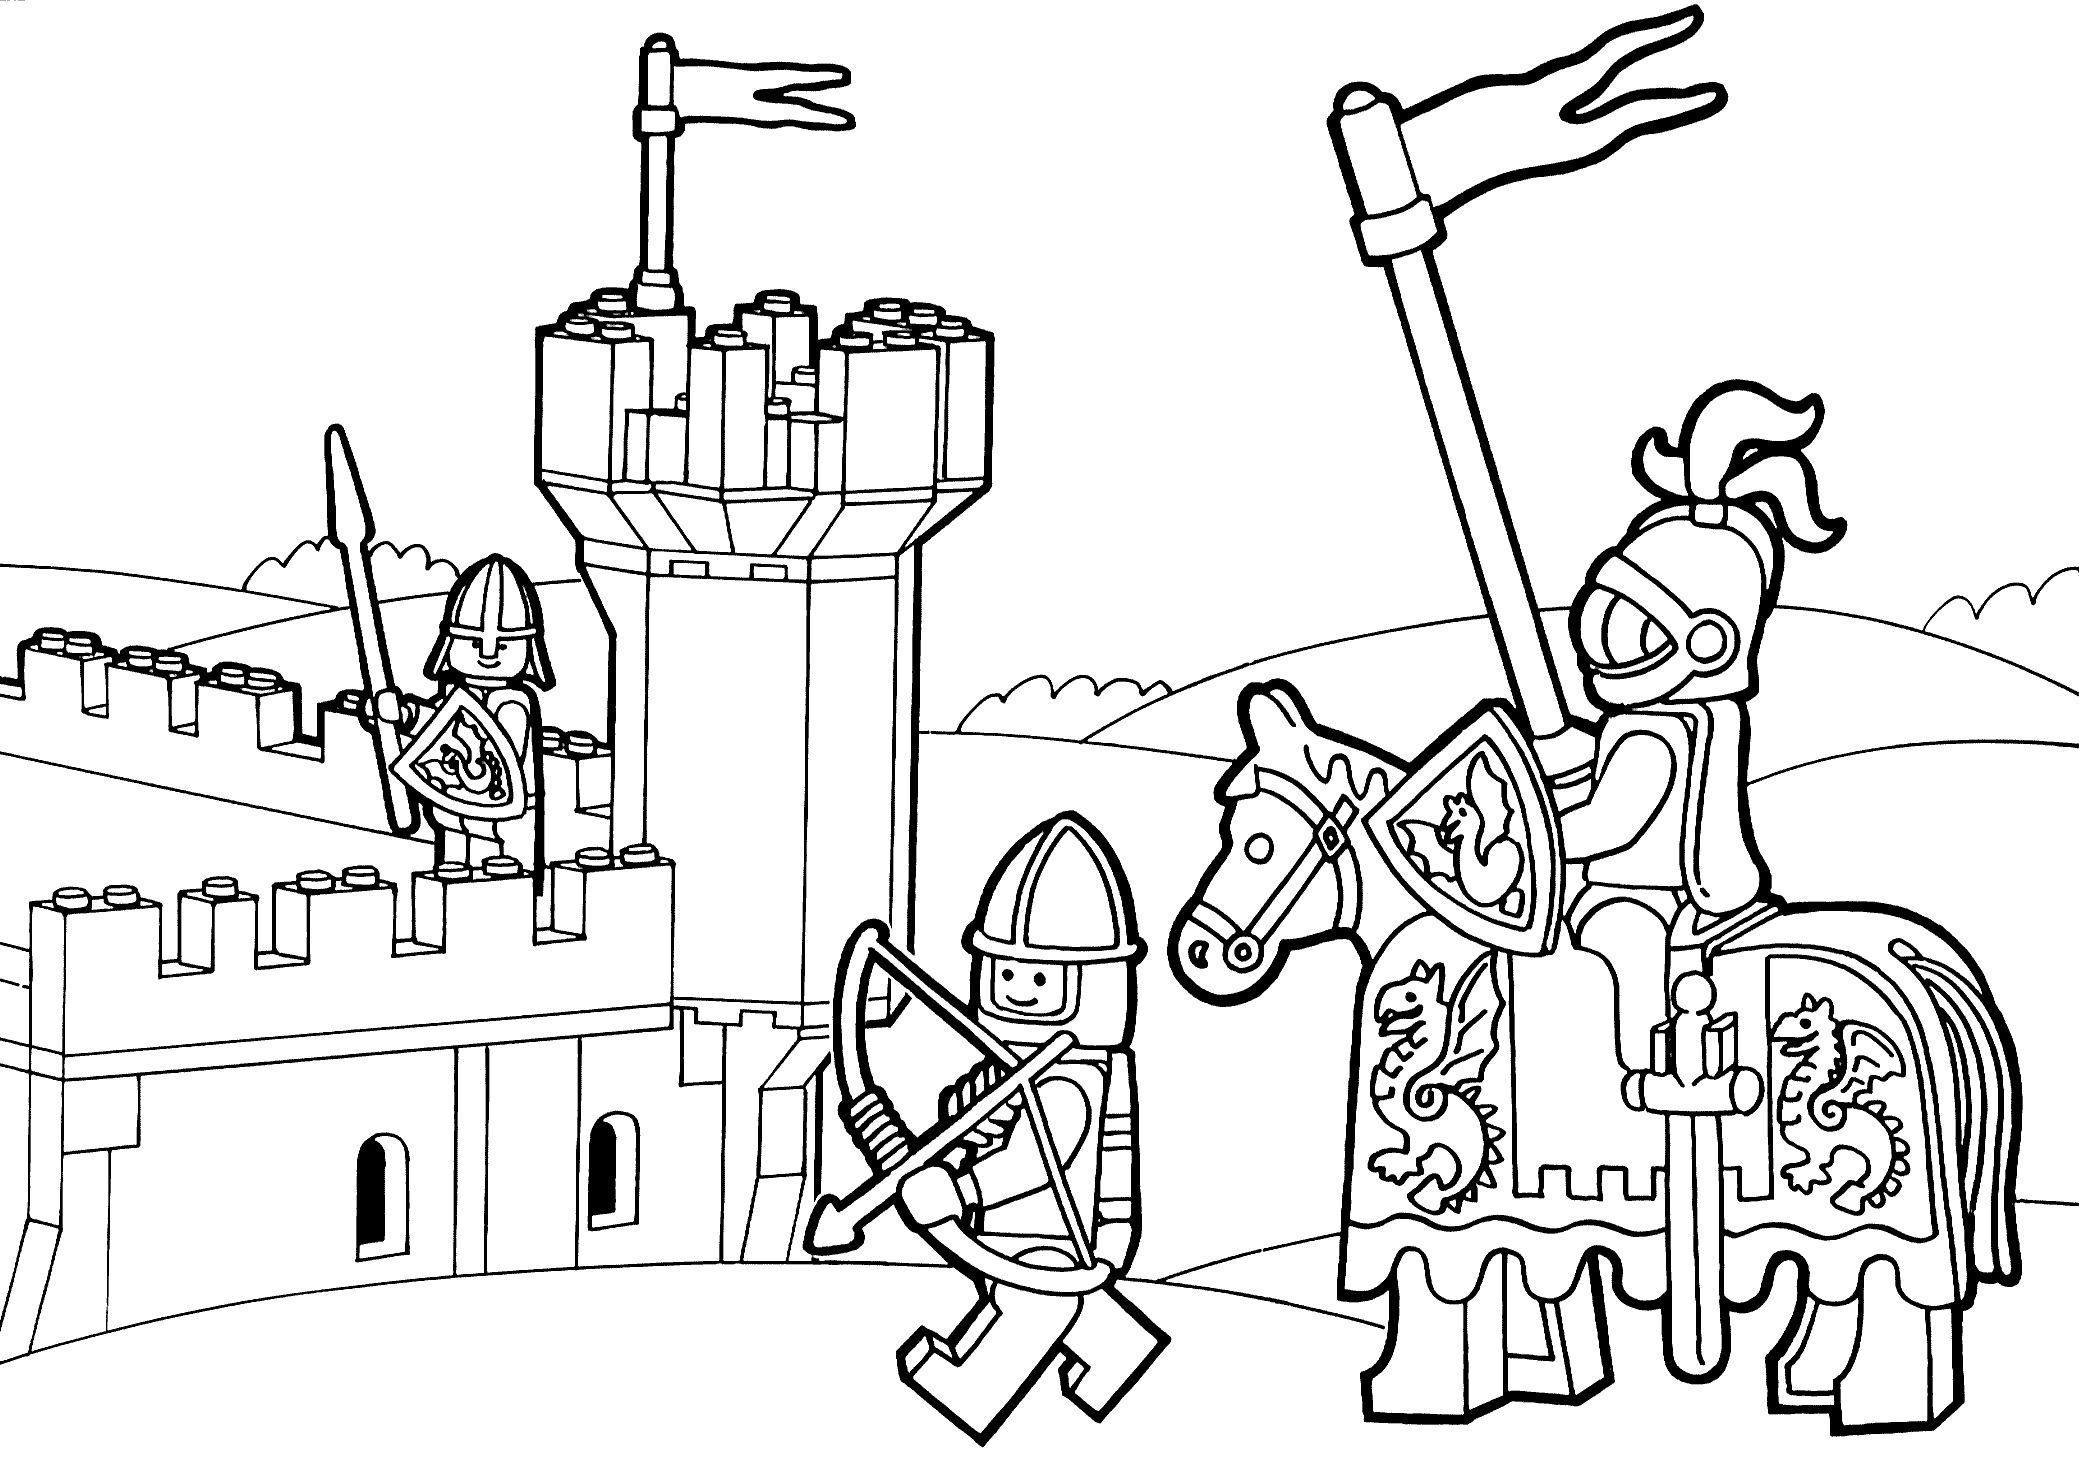 Lego Duplo Knights Coloring Page For Kids Printable Free Lego - Free Printable Pictures Of Knights